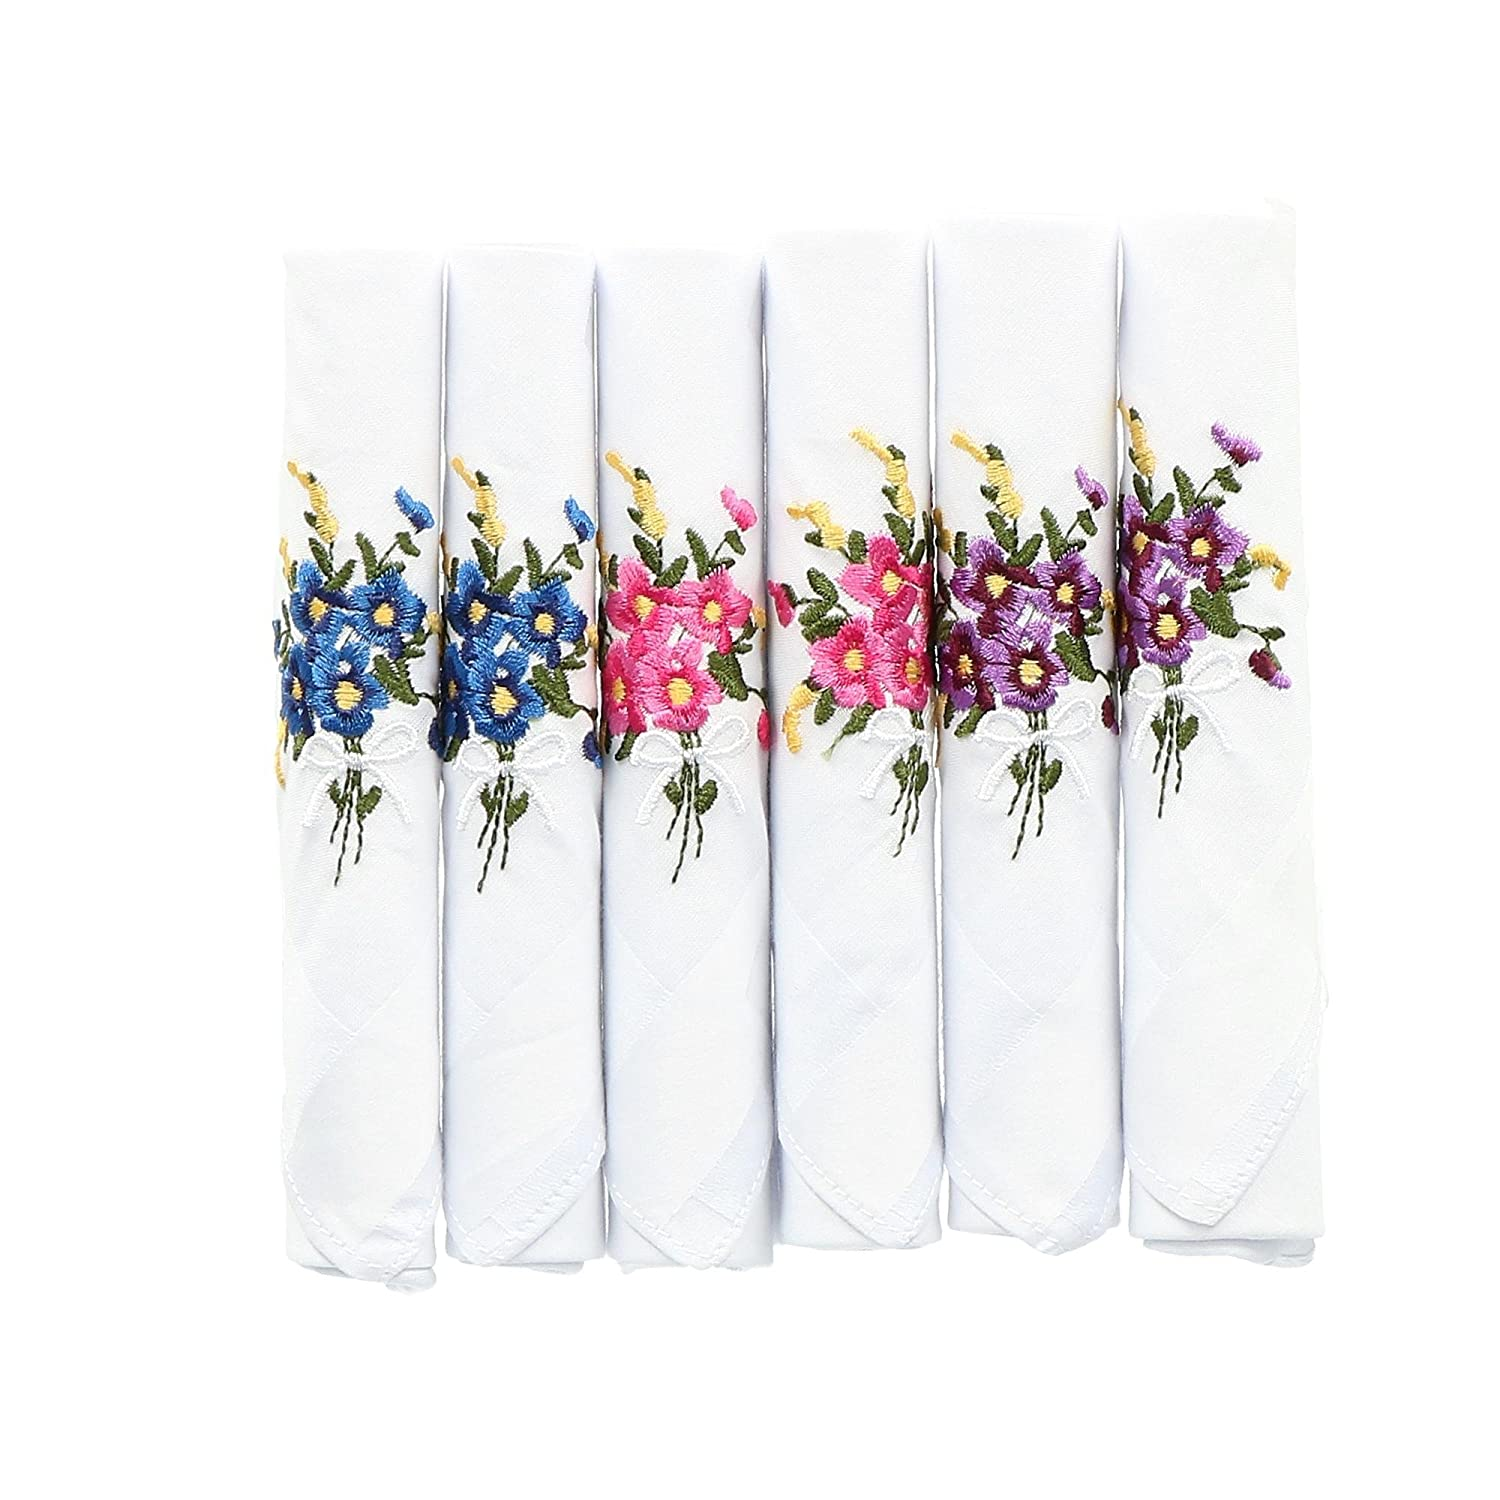 Selini Women's Floral Embroidered Cotton Handkerchiefs (Pack of 6), White